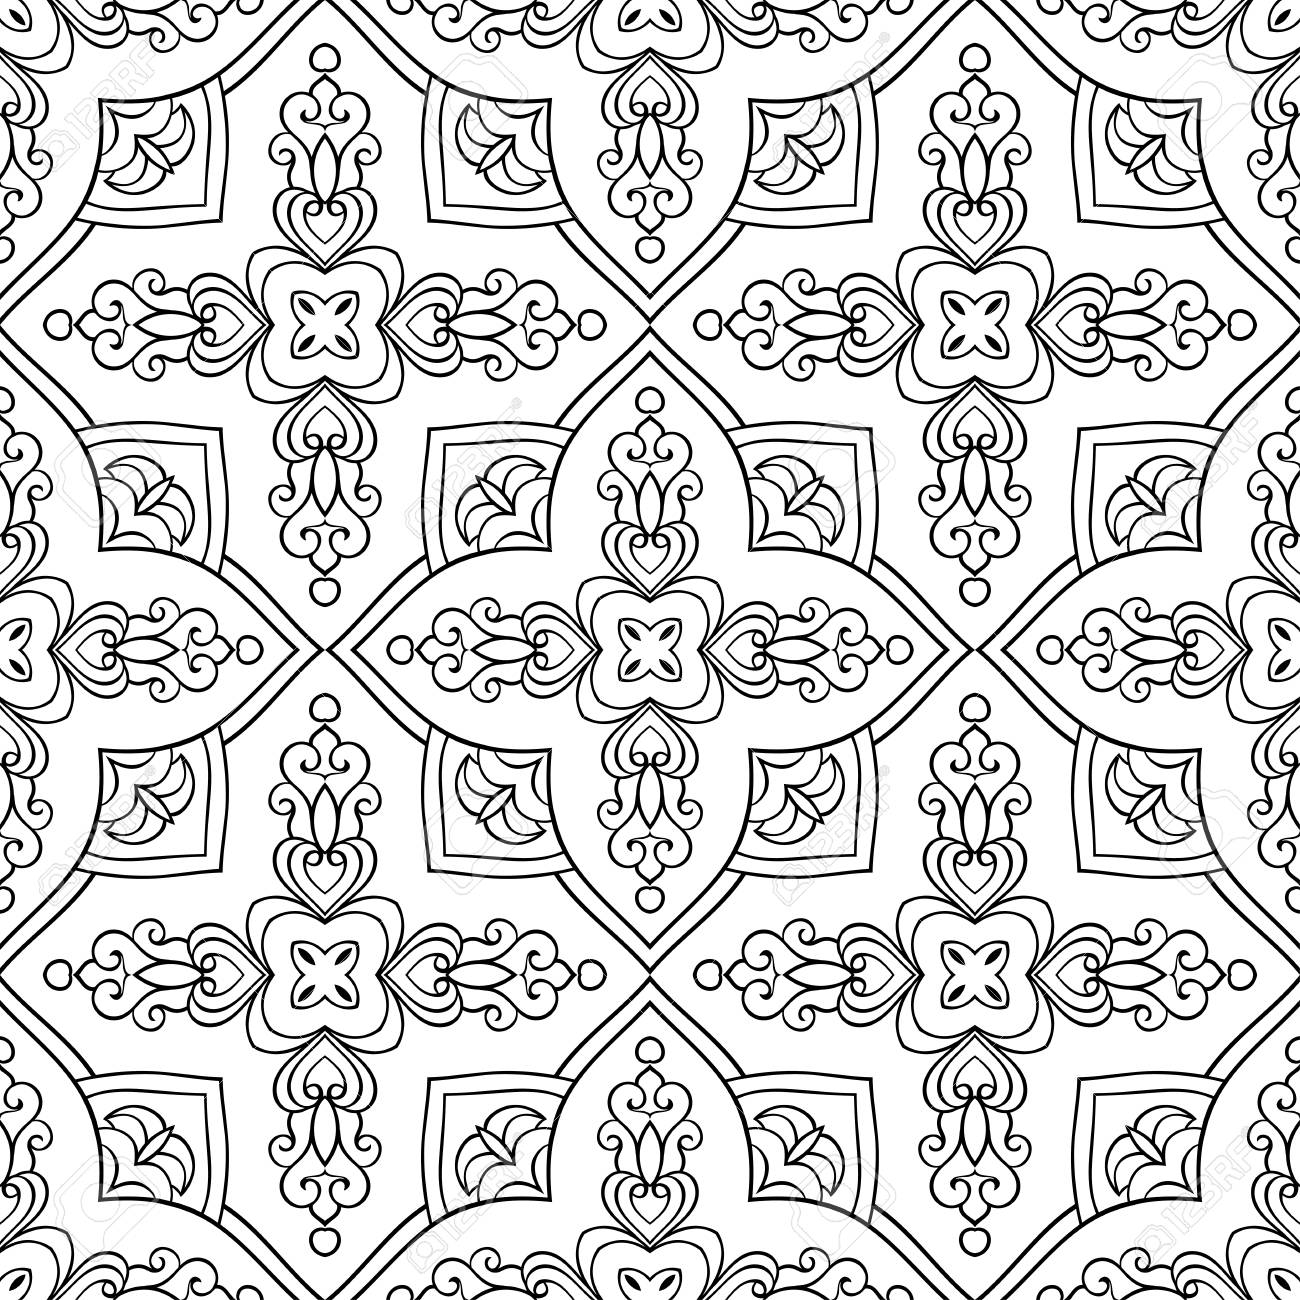 Oriental Seamless Ornamental Pattern Black And White Background Royalty Free Cliparts Vectors And Stock Illustration Image 65430407